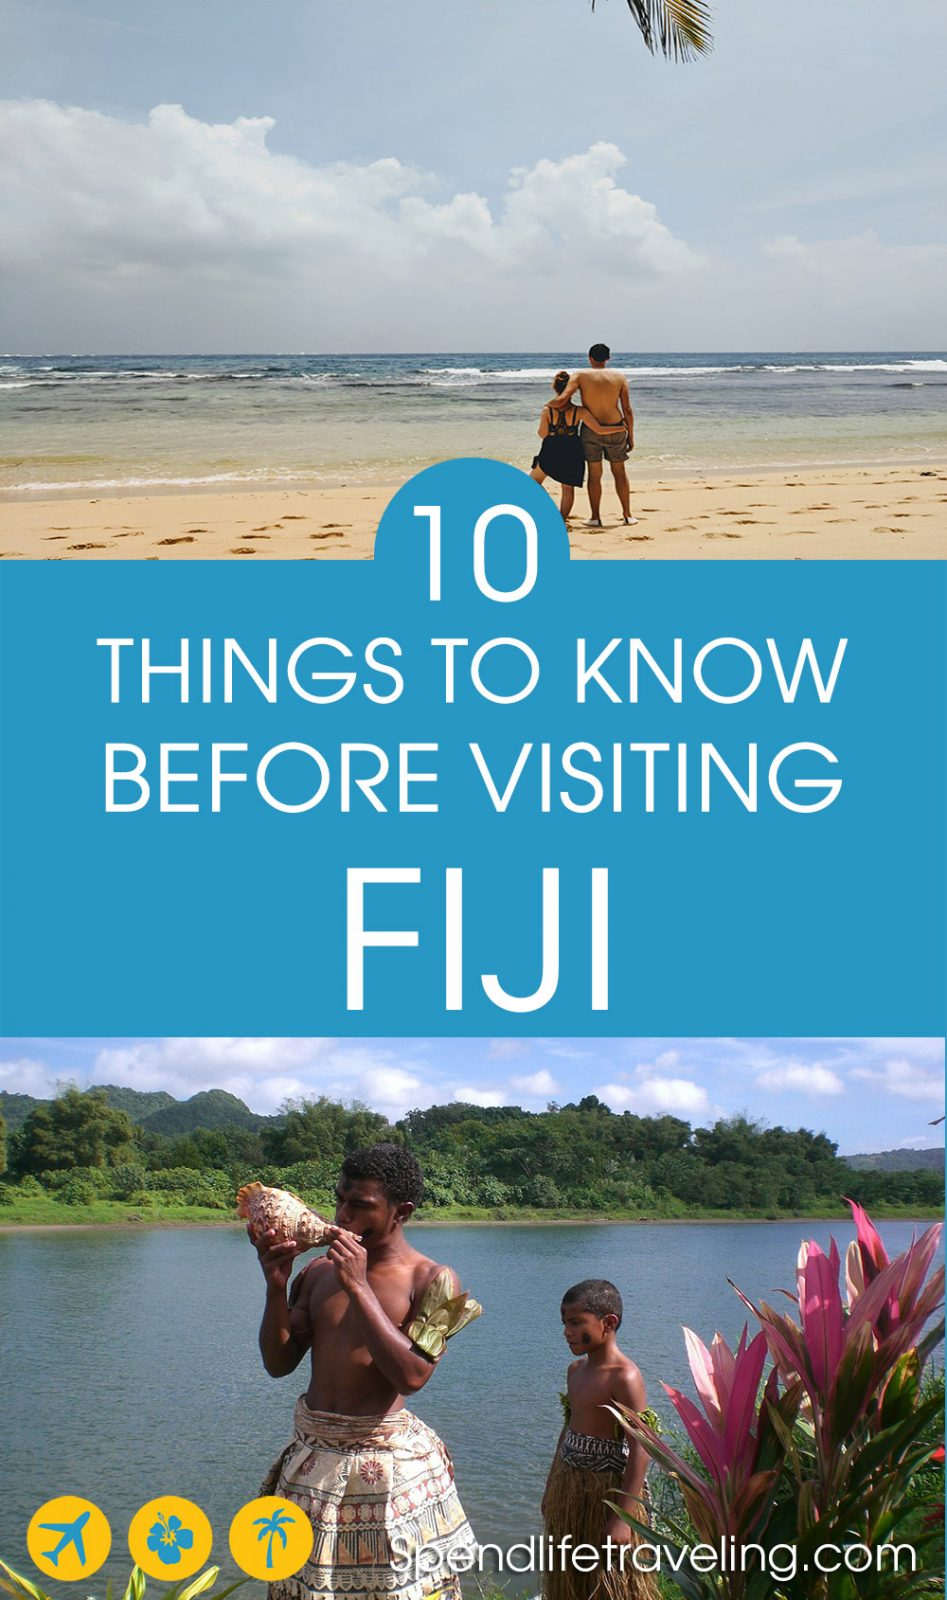 Fiji is a tropical paradise. But, before you travel there check out these 10 things to know about Fiji to make the most out of your trip!